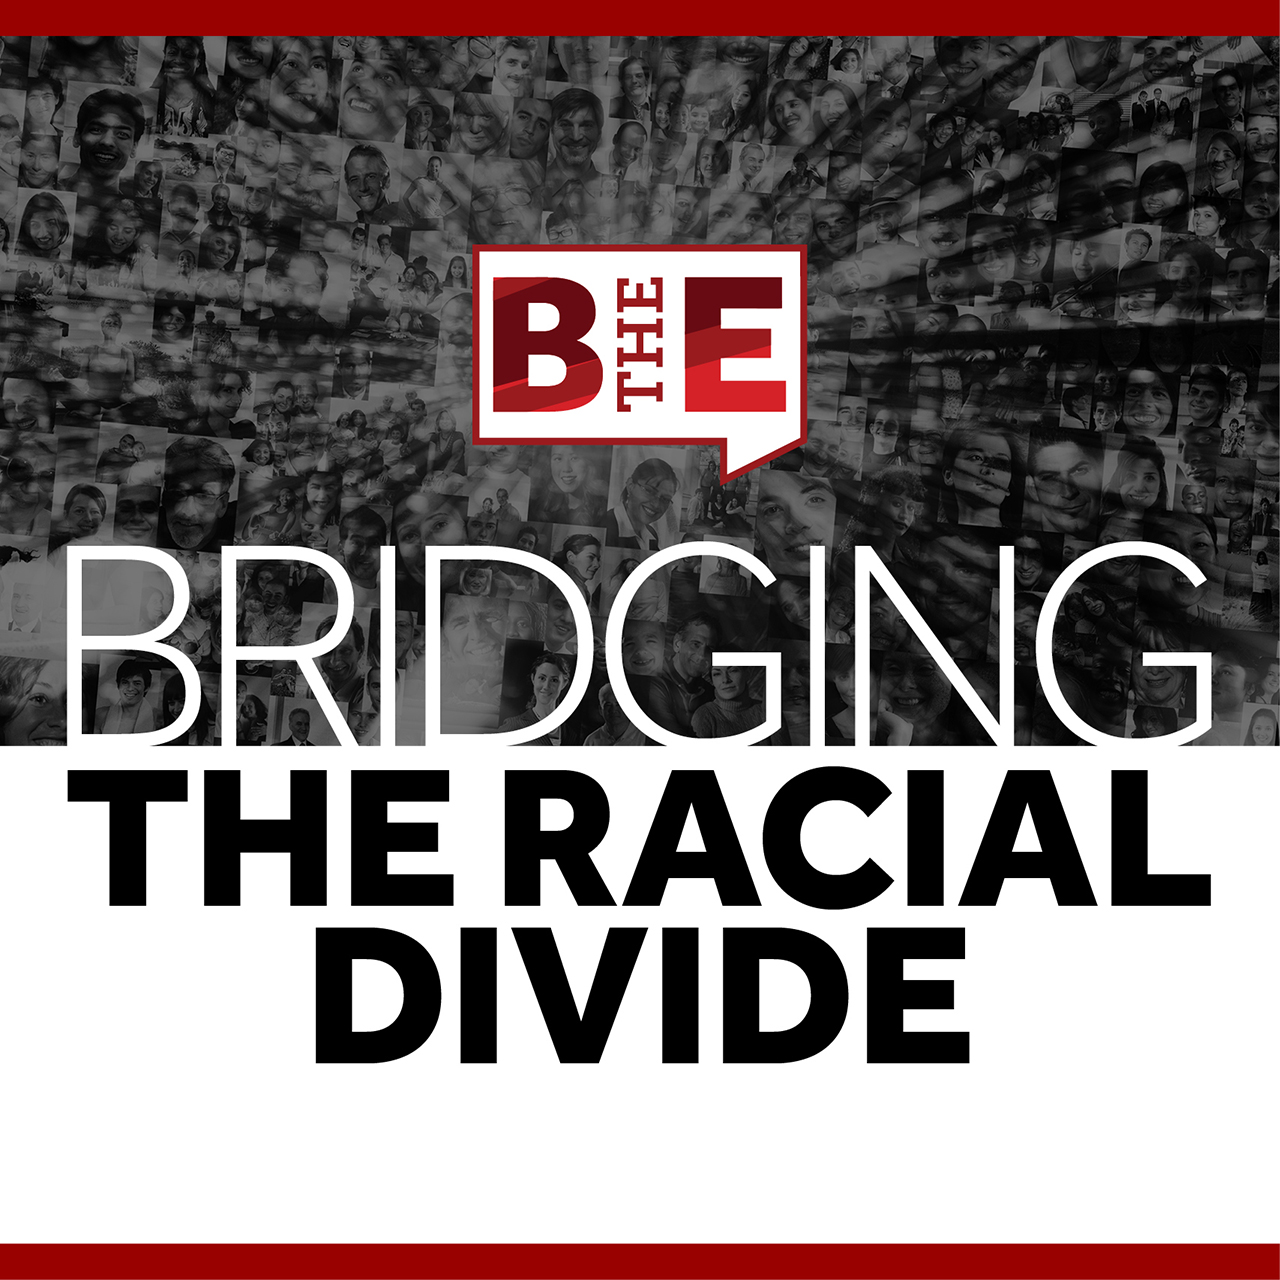 20062007 beyond expected bridging the racial divide podcast image square for anchor 1